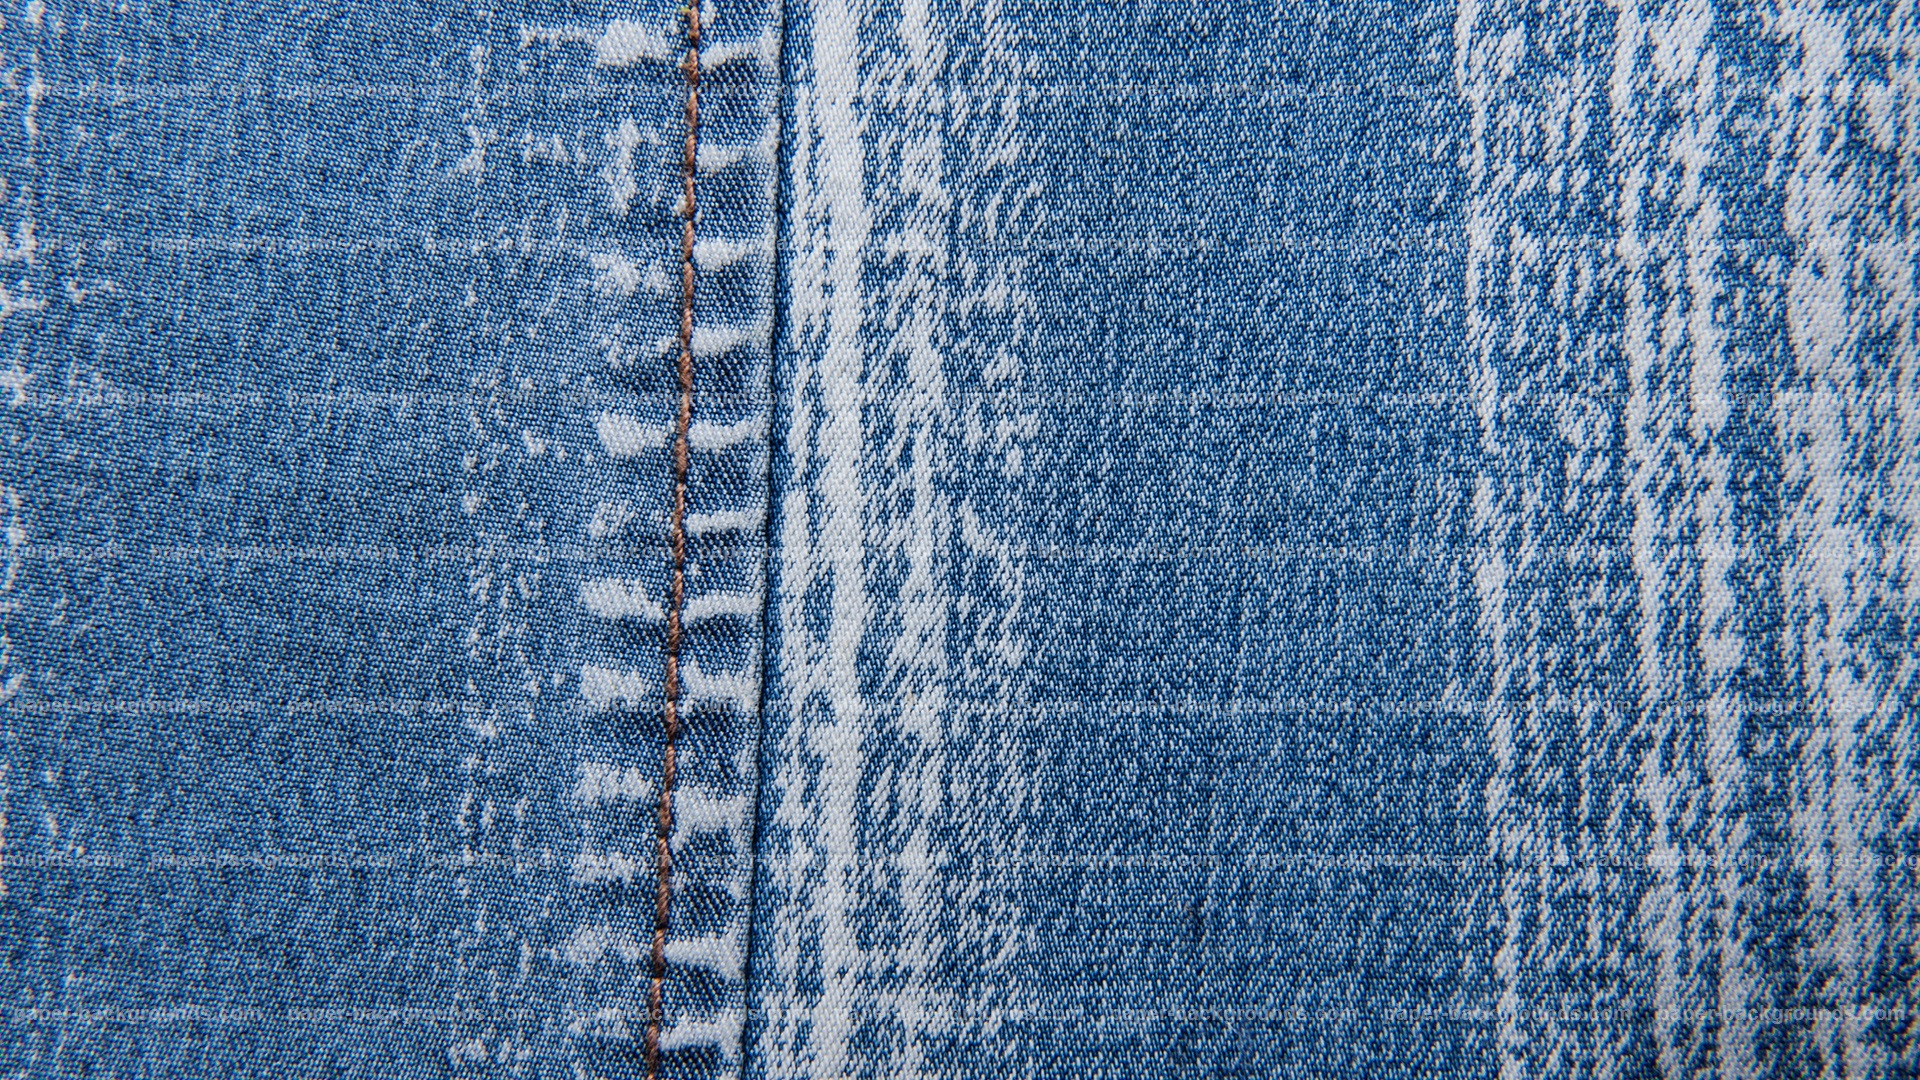 Vintage Blue Jeans Stitched Background Texture HD